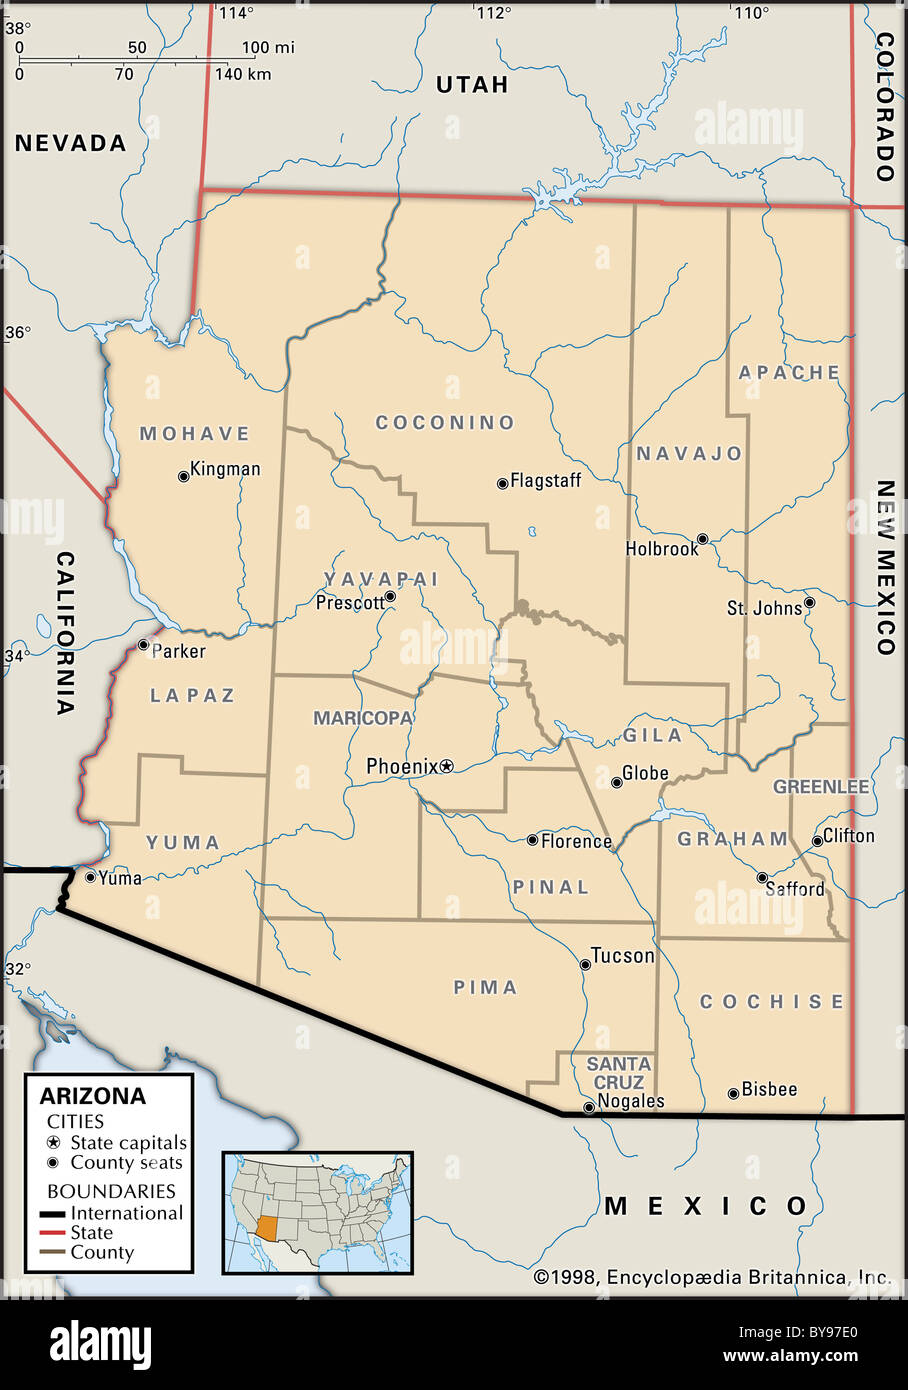 Map Of Arizona And Cities.Arizona Map Stock Photos Arizona Map Stock Images Alamy